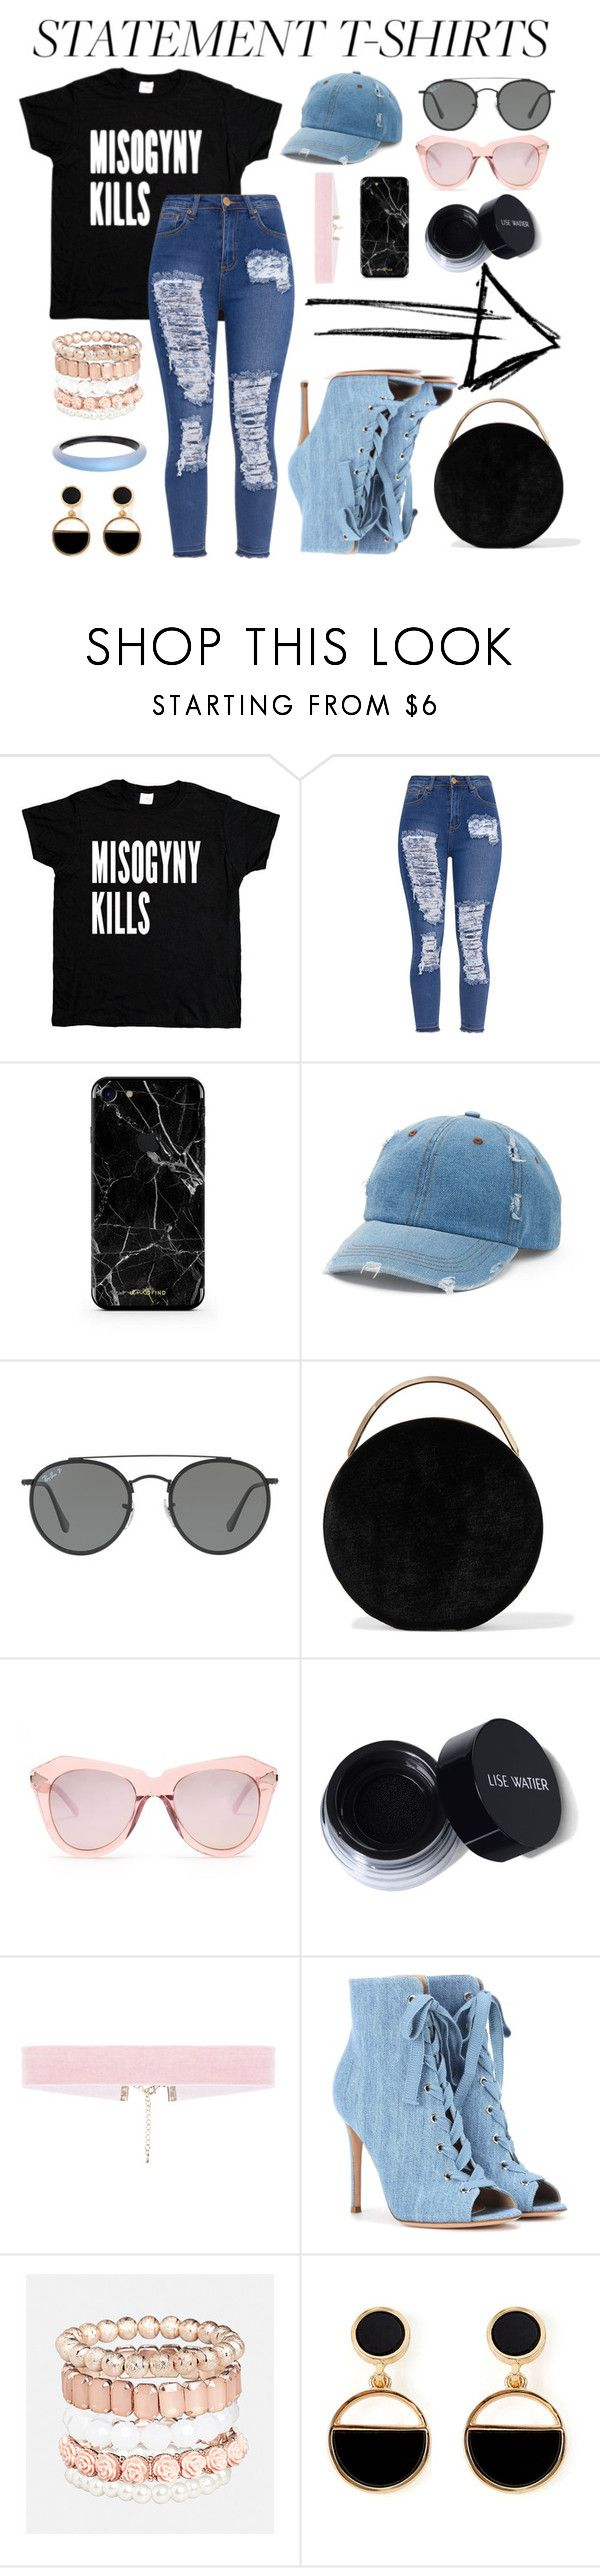 """Untitled #109"" by emmazcheung ❤ liked on Polyvore featuring Mudd, Ray-Ban, Eddie Borgo, Karen Walker, Gianvito Rossi, Avenue, Warehouse and Alexis Bittar"